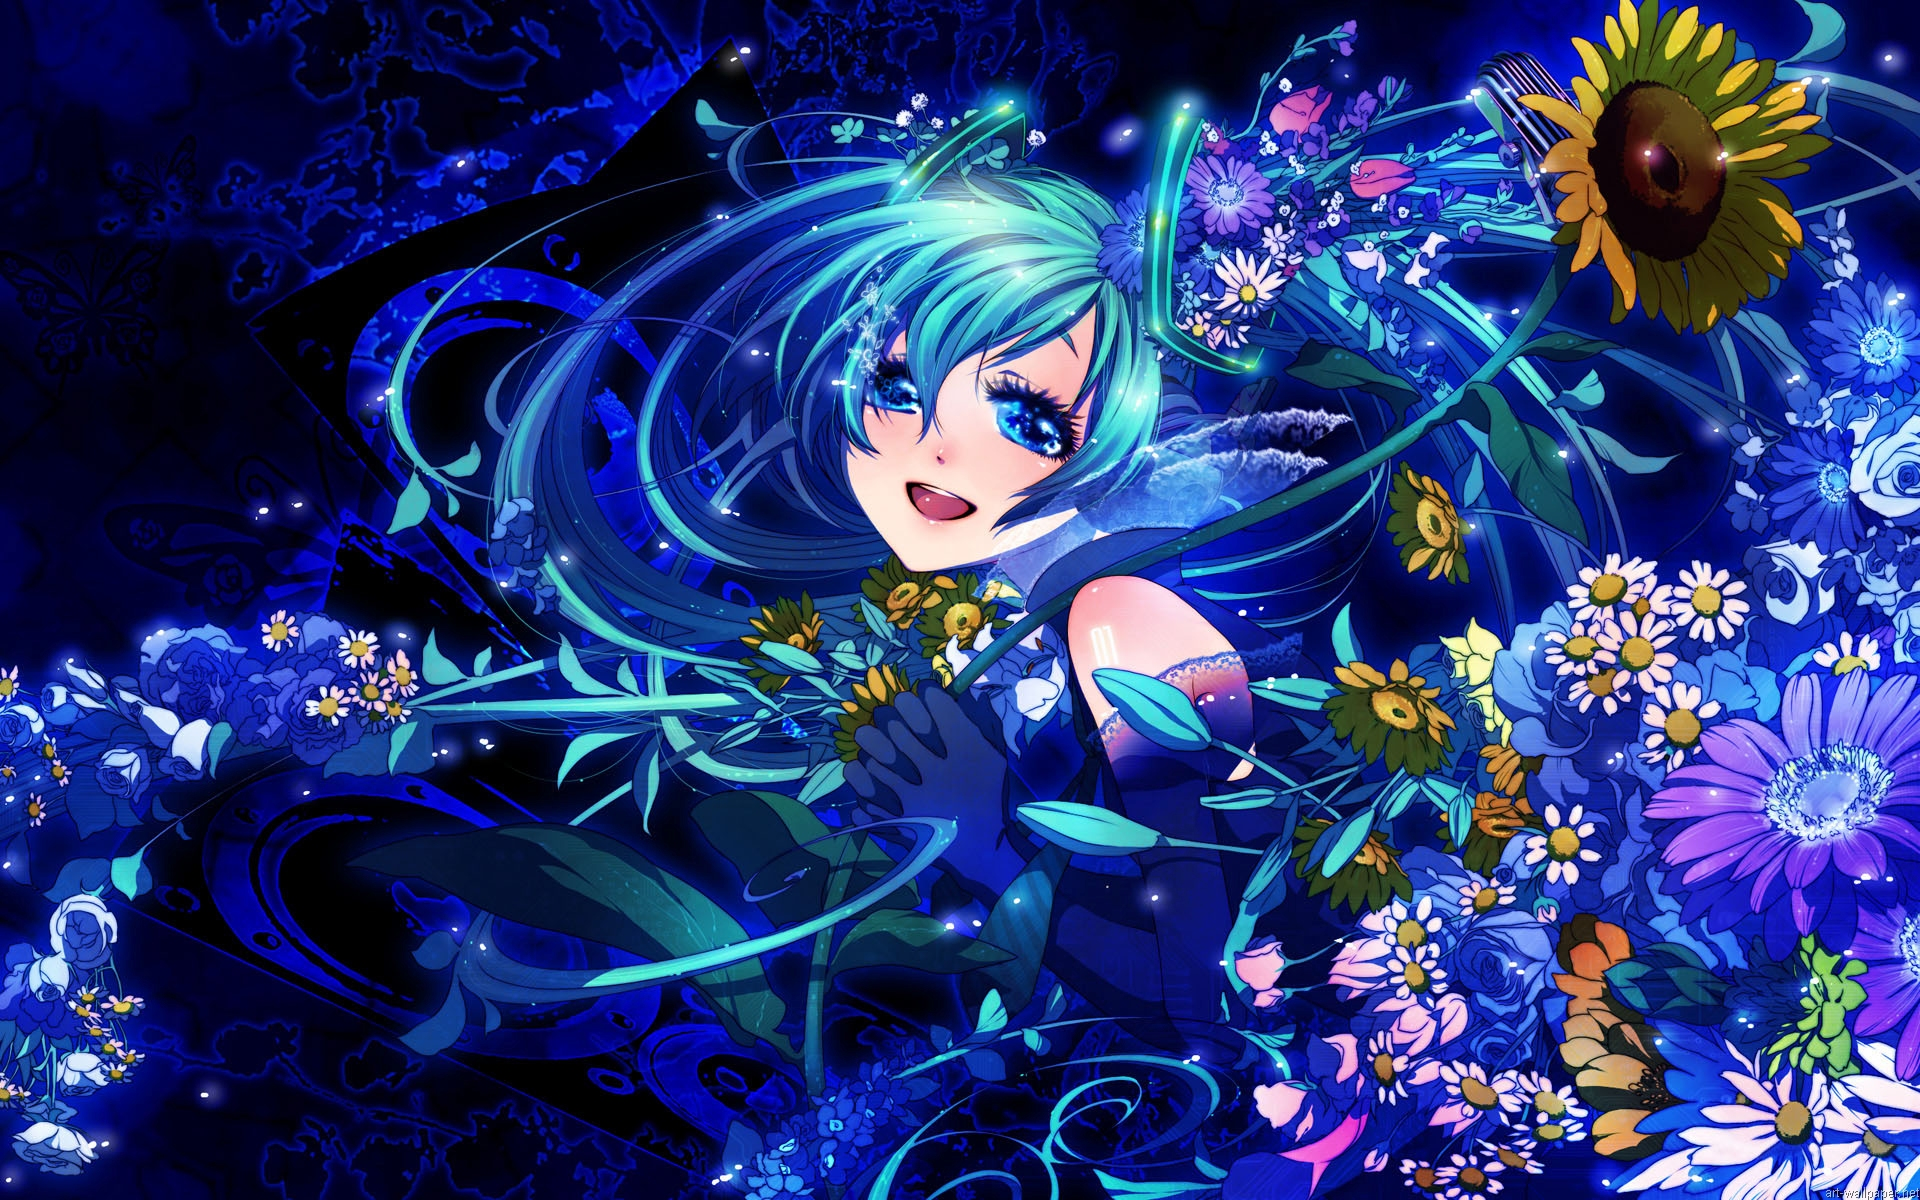 Cool Anime wallpapers 1920x1200 desktop backgrounds